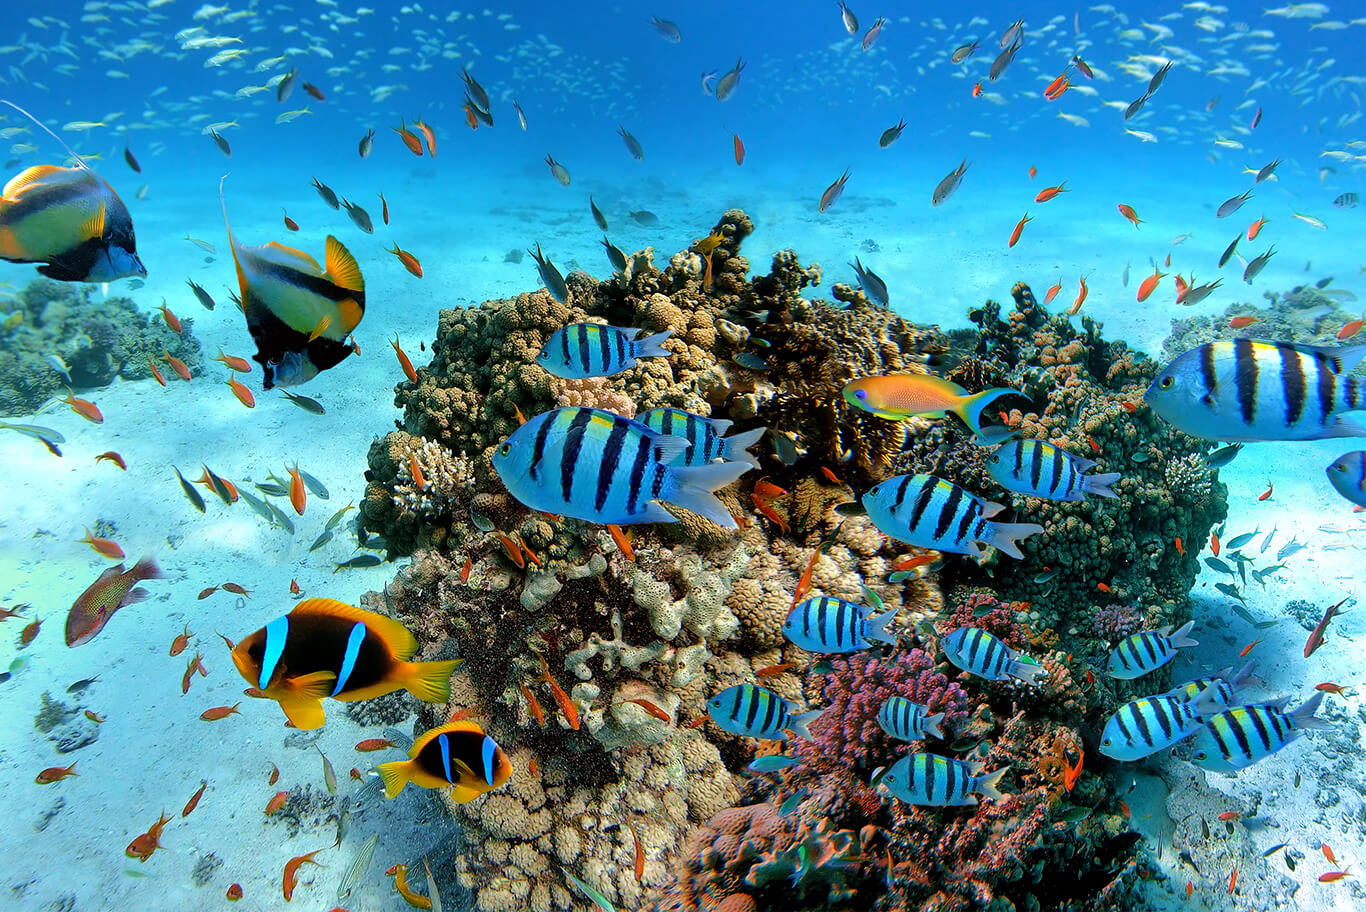 tropical fish swimming in shallow water with clear underwater visibility in Sri Lanka